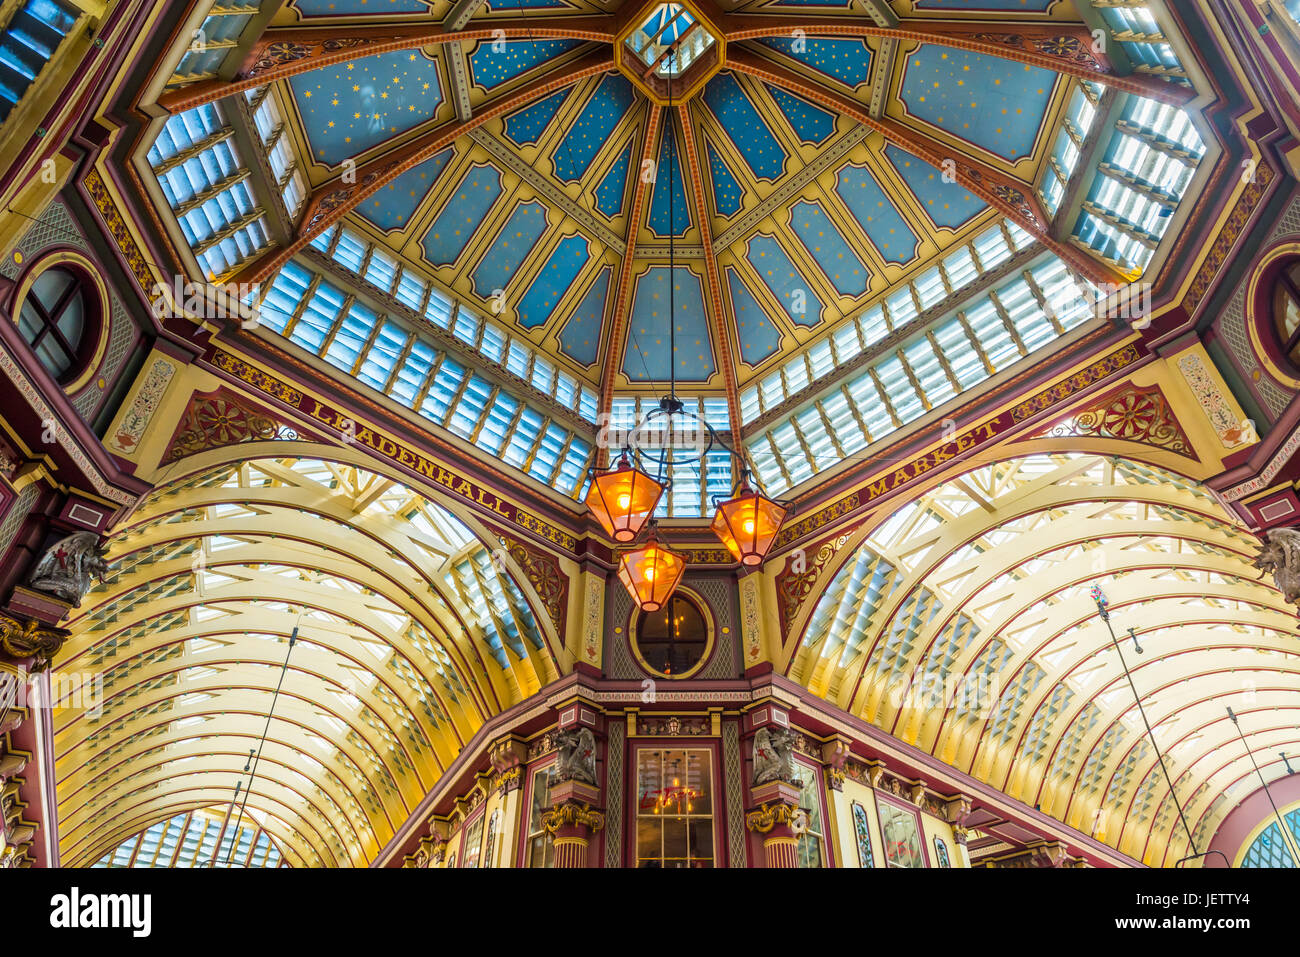 Reich verzierte Decke, Leadenhall Market, London, UK Stockbild